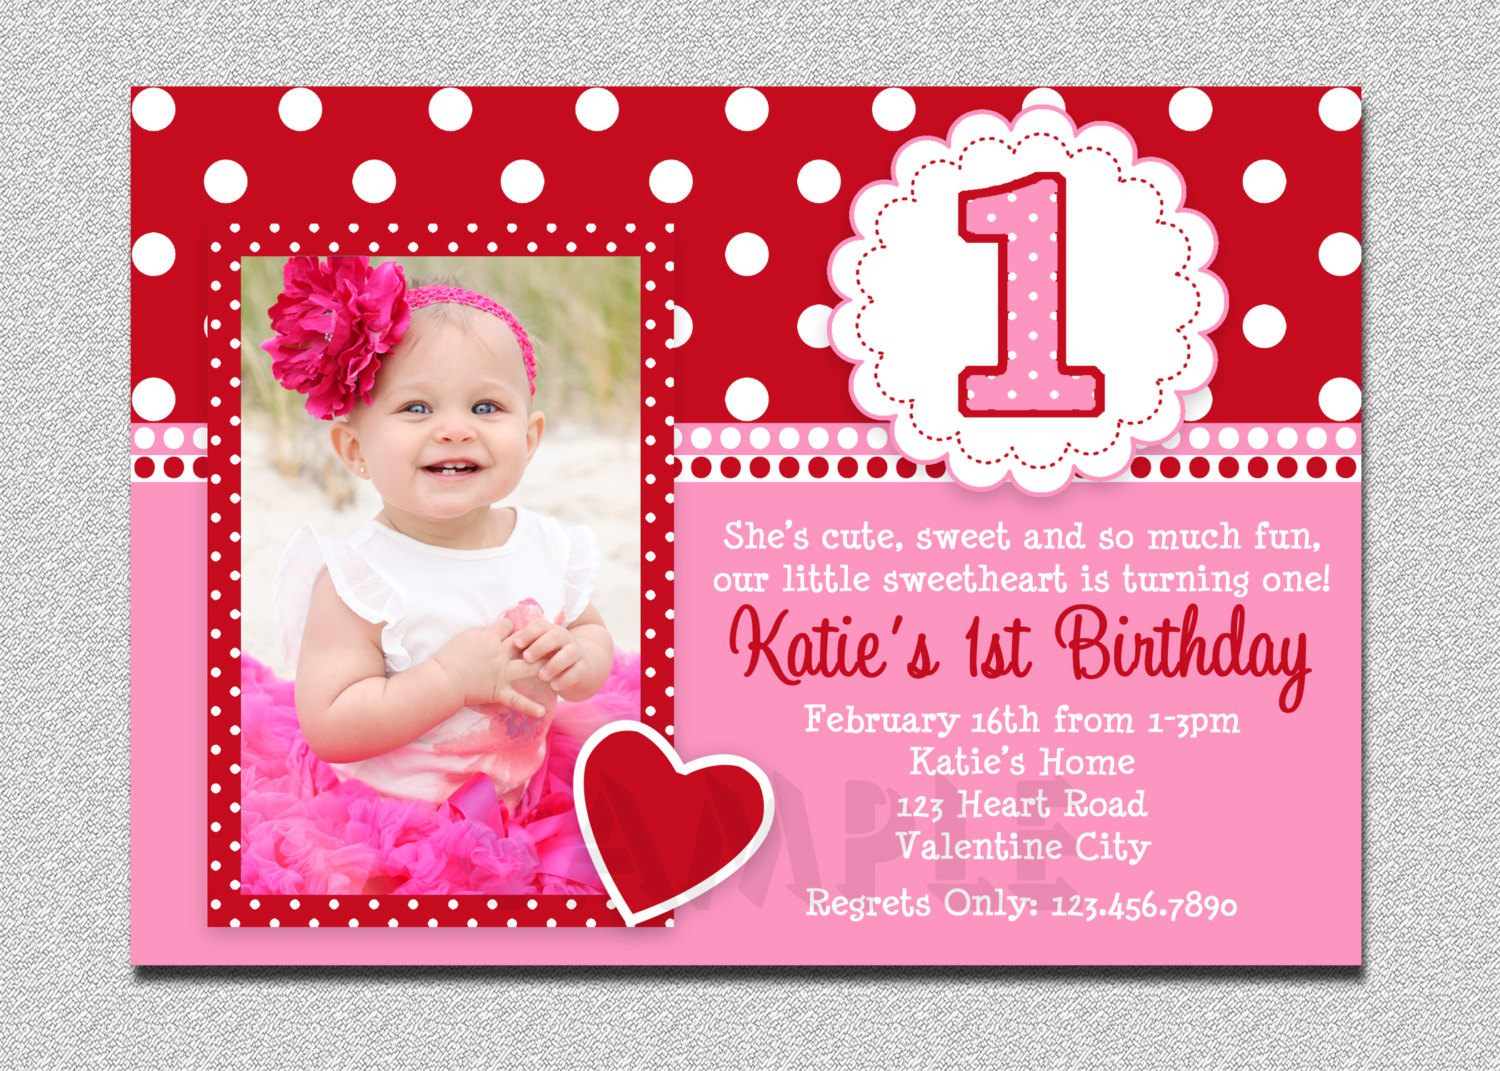 baby birthday invitation card design ; 1st-birthday-party-invitations-to-get-ideas-how-to-make-your-own-Birthday-invitation-design-2